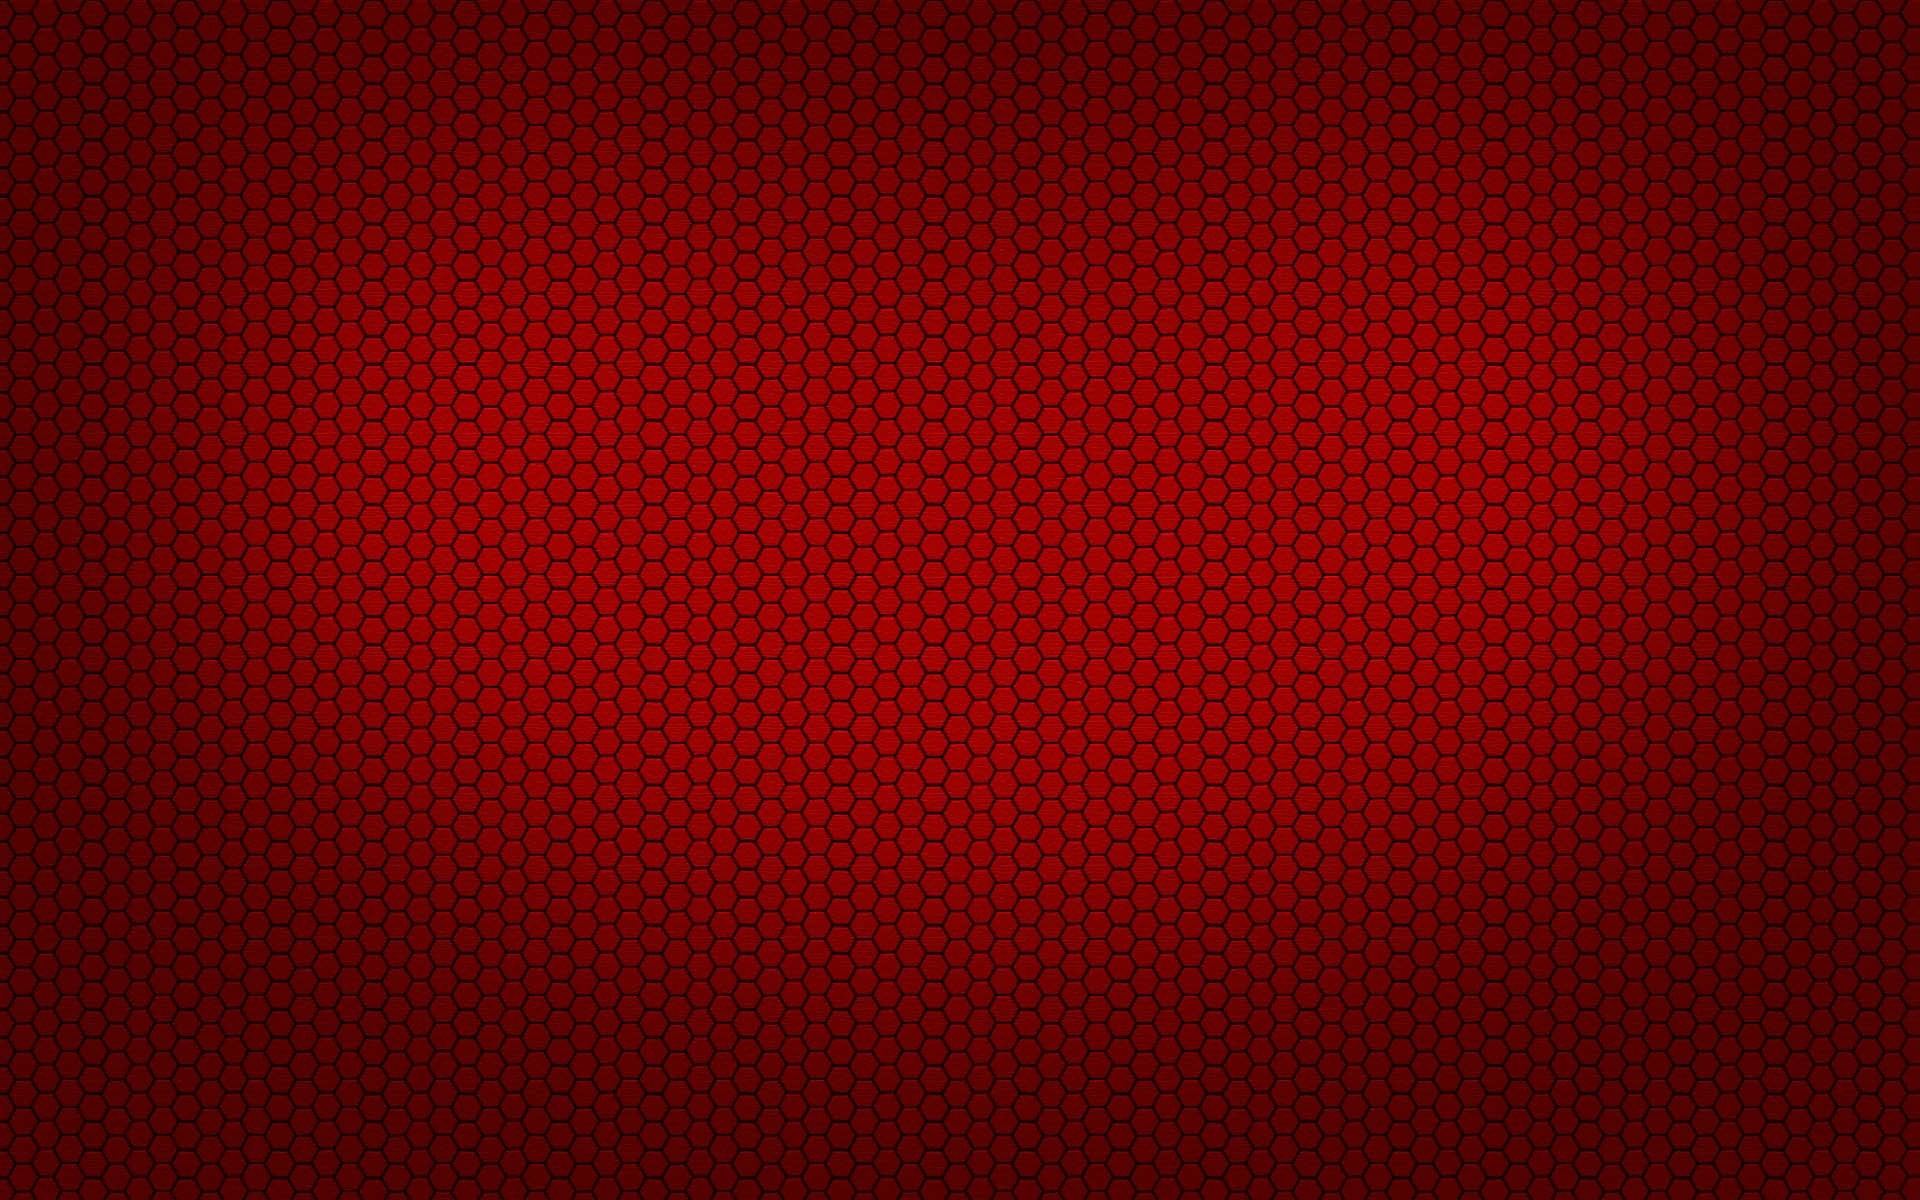 Textured Red Wallpaper...